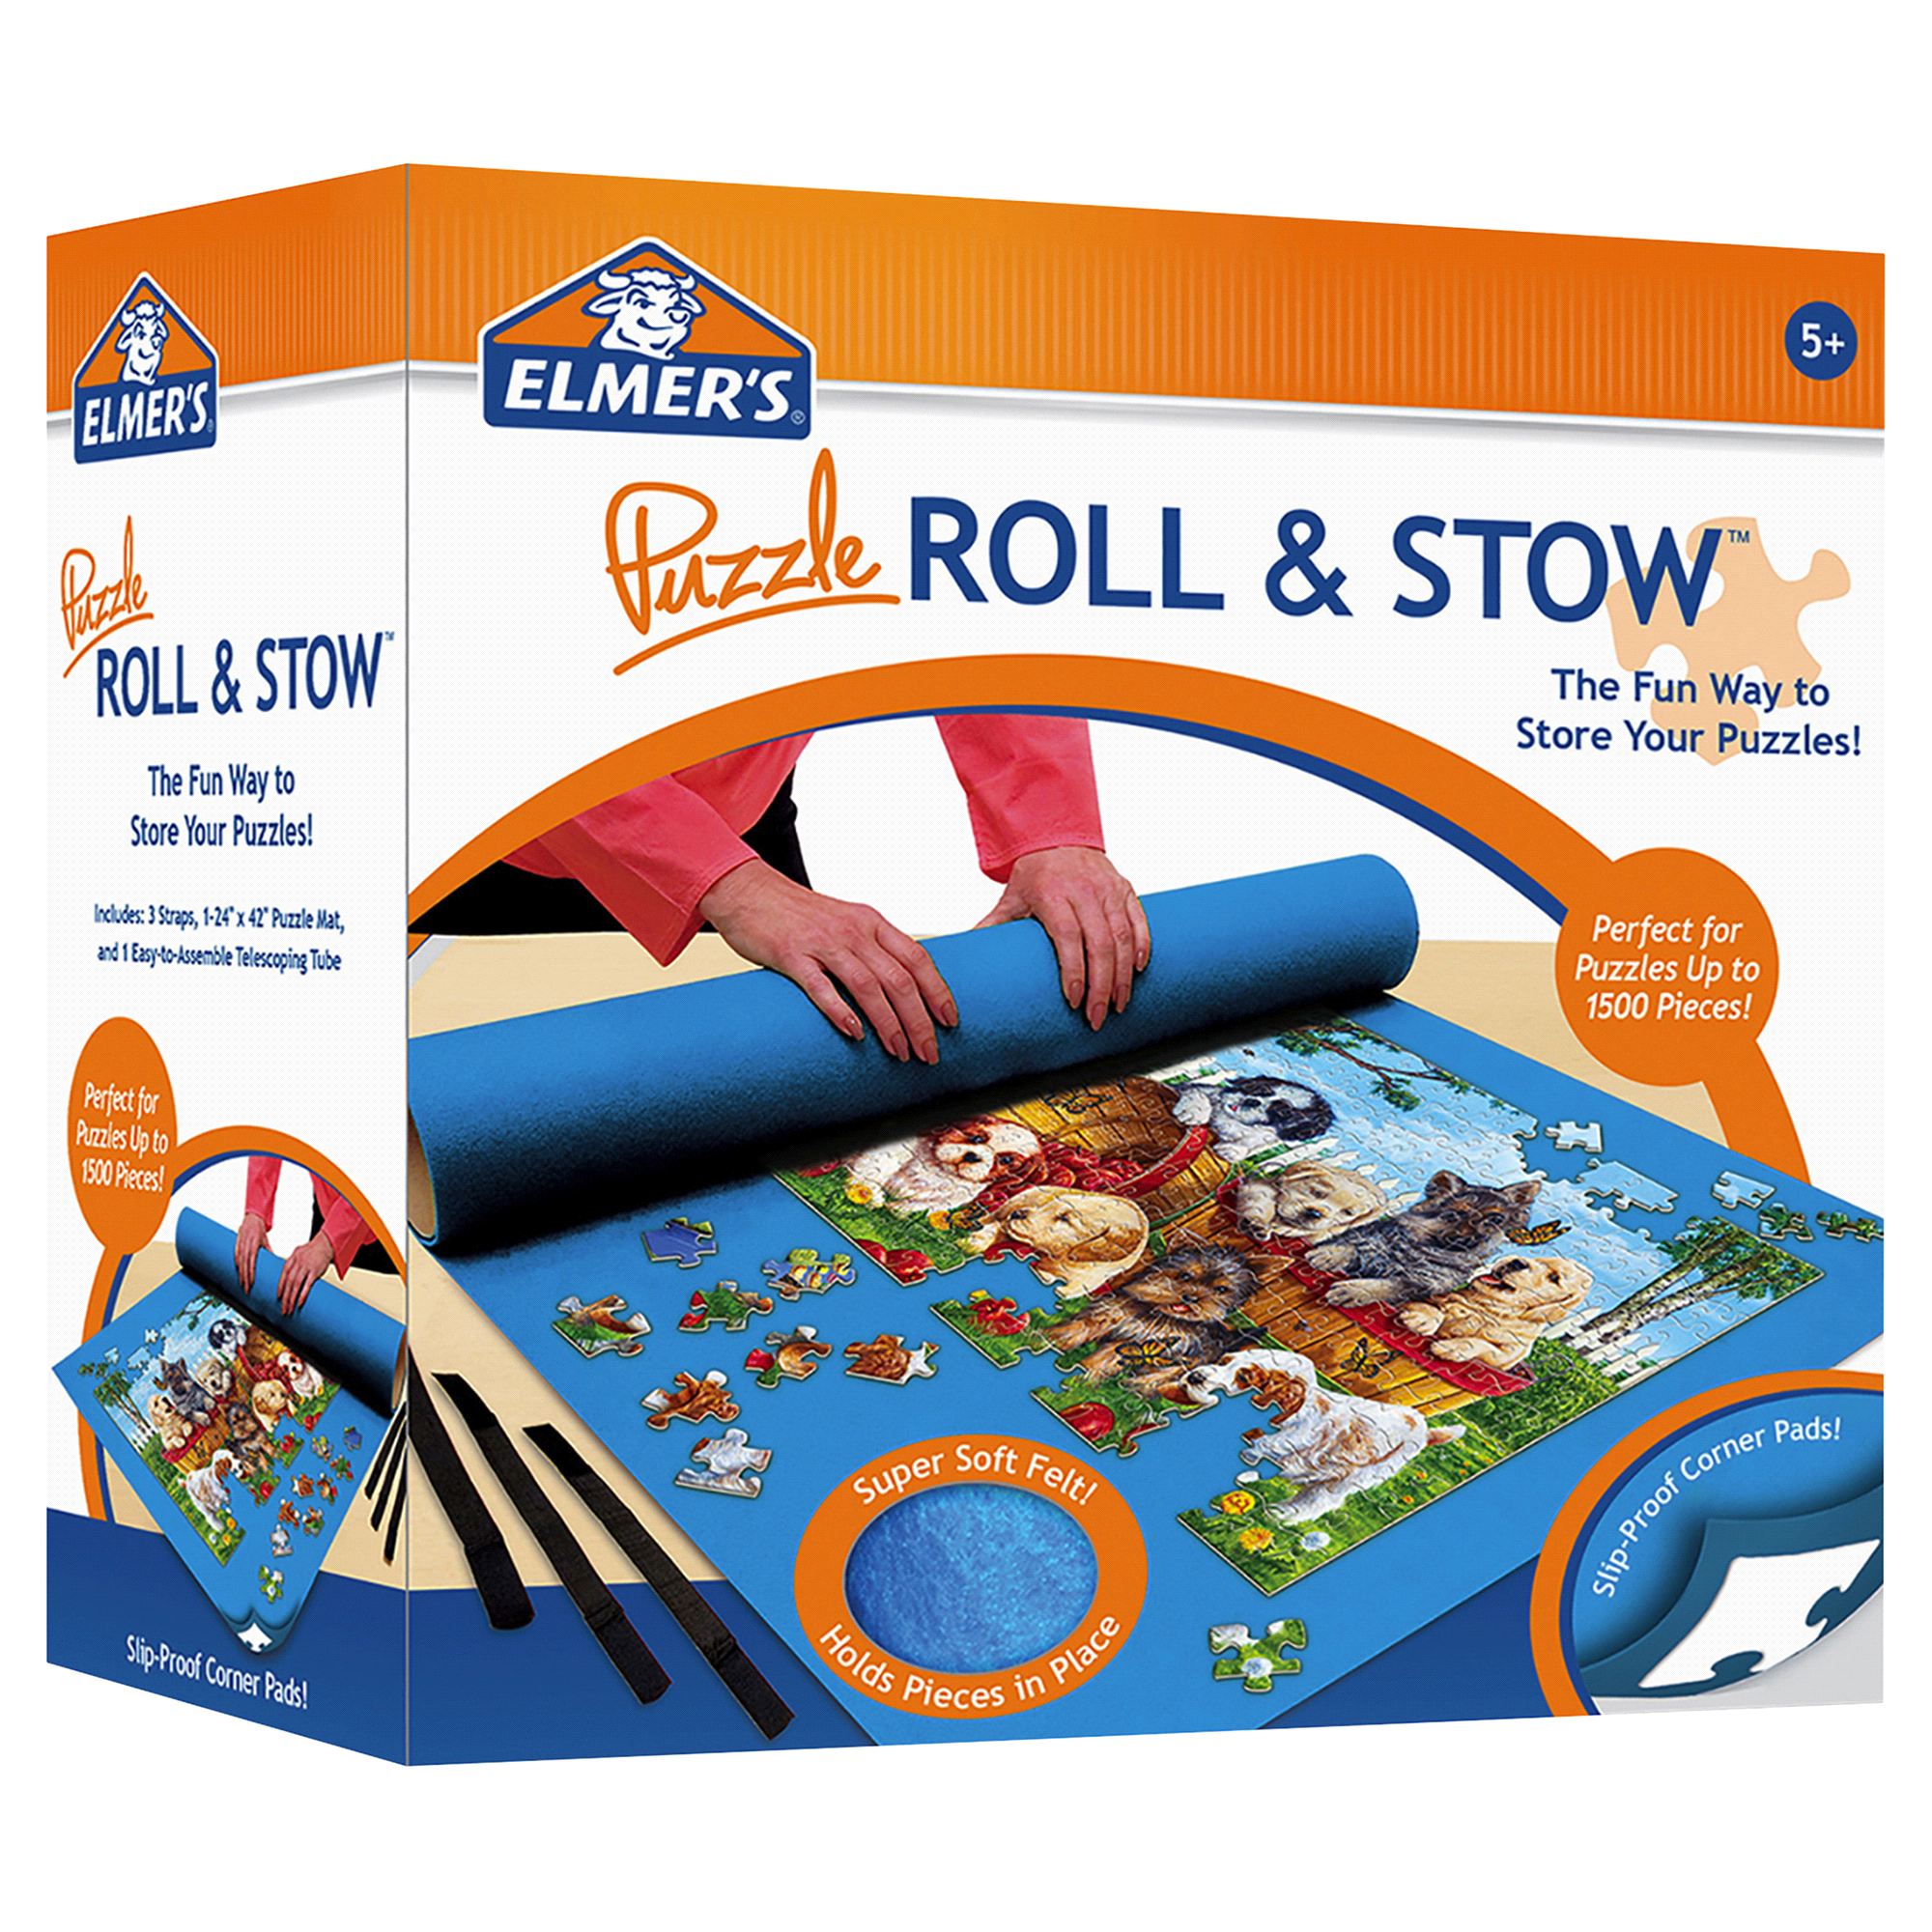 Elmers Puzzle Roll Stow Trailer Wiring Diagram Likewise Led Tail Light Furthermore